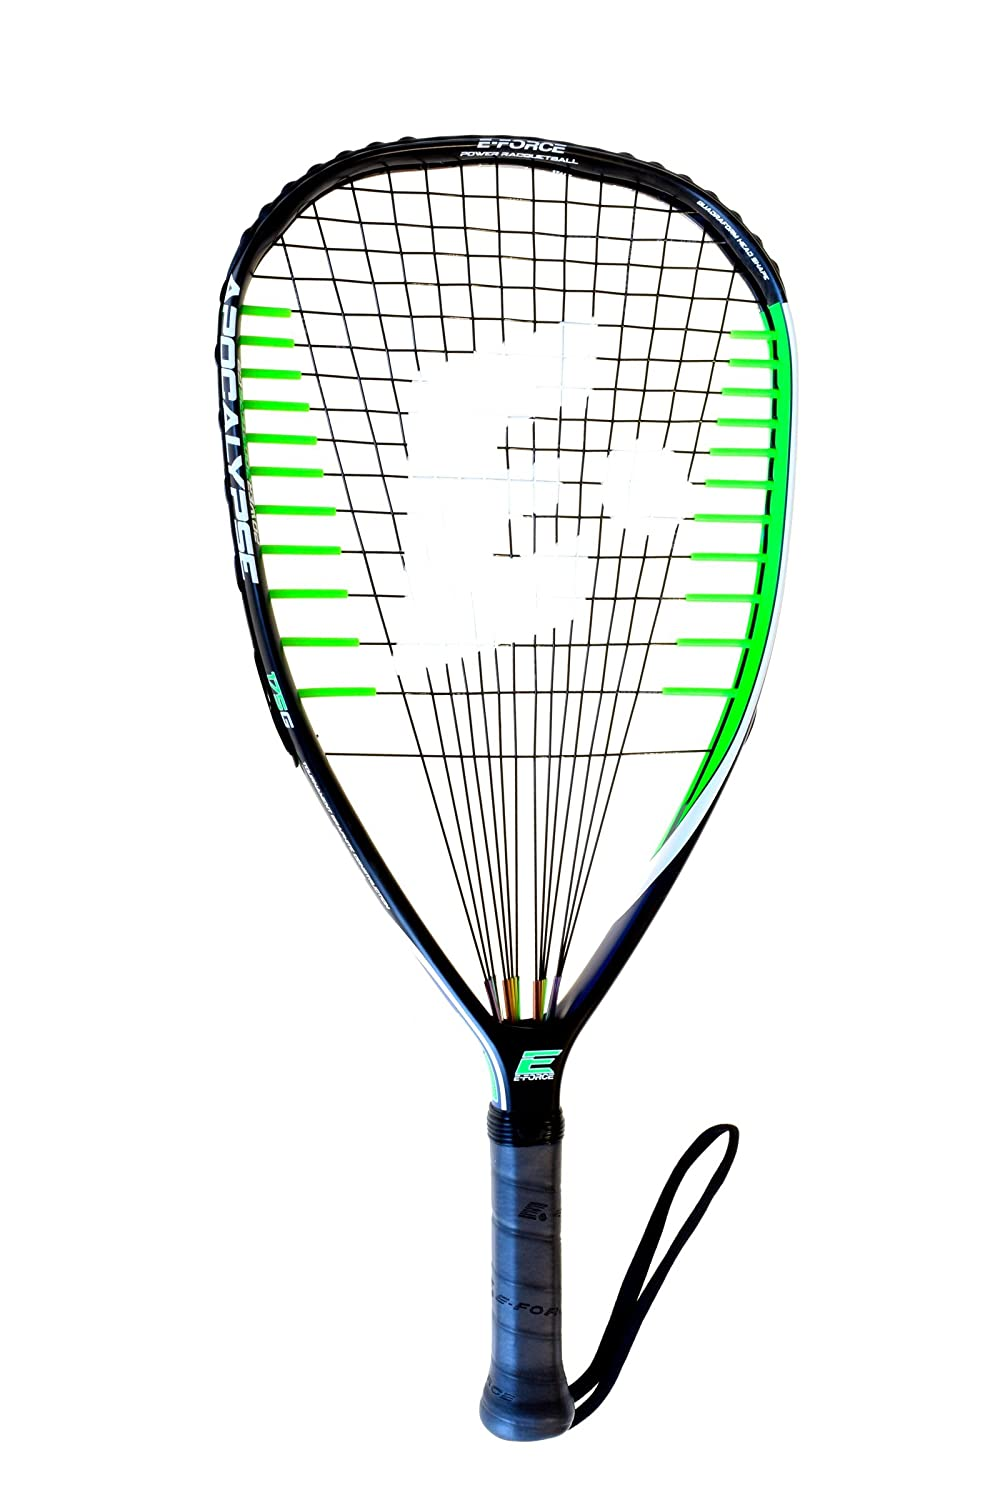 E-Force Apocalypse – Best Racquetball Racquet for Intermediate Players